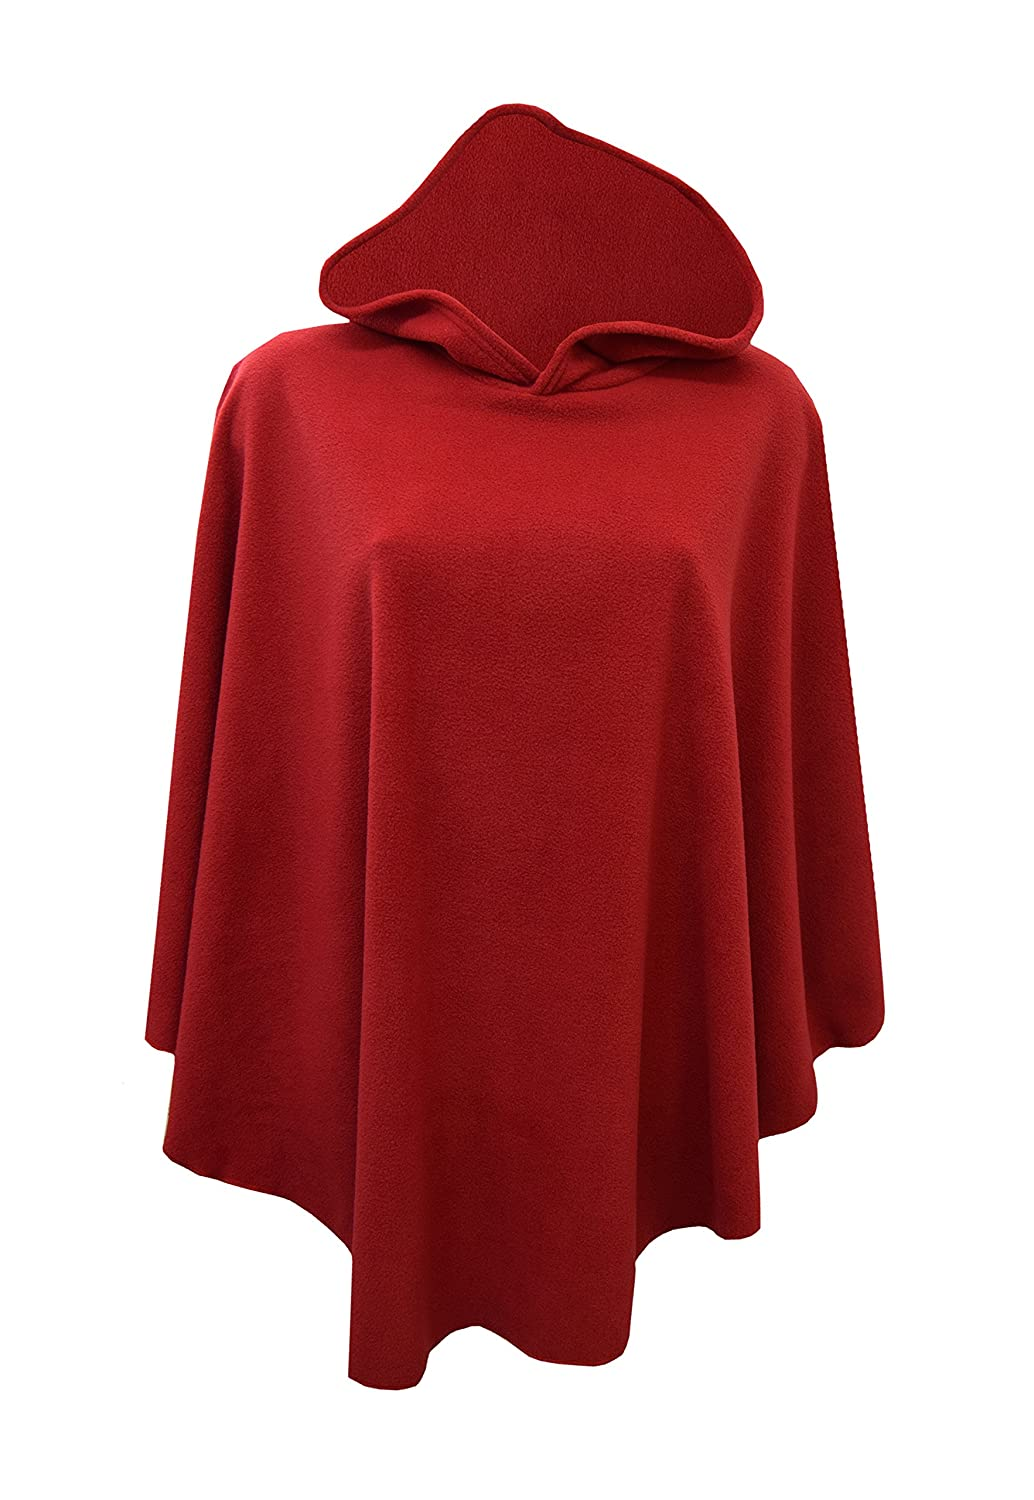 Hkclothings New Ladies Women Winter Casual Fleece Pull Over Hooded Cape Poncho Plus Size